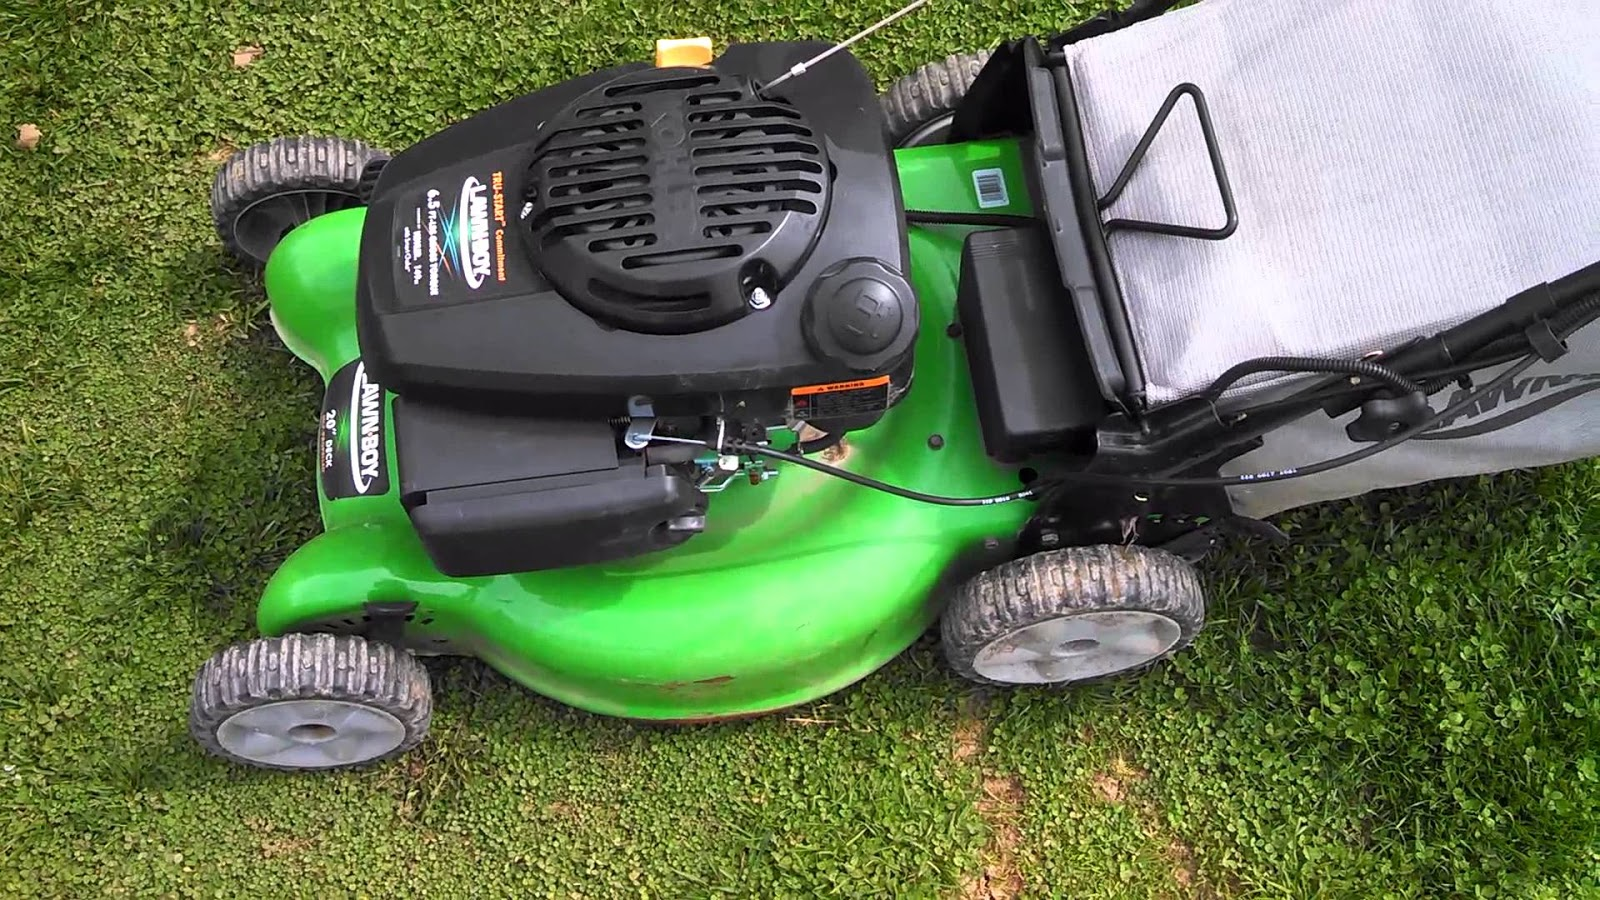 The way to Change the Oil on a Lawn Boy 6 5 Push Mower